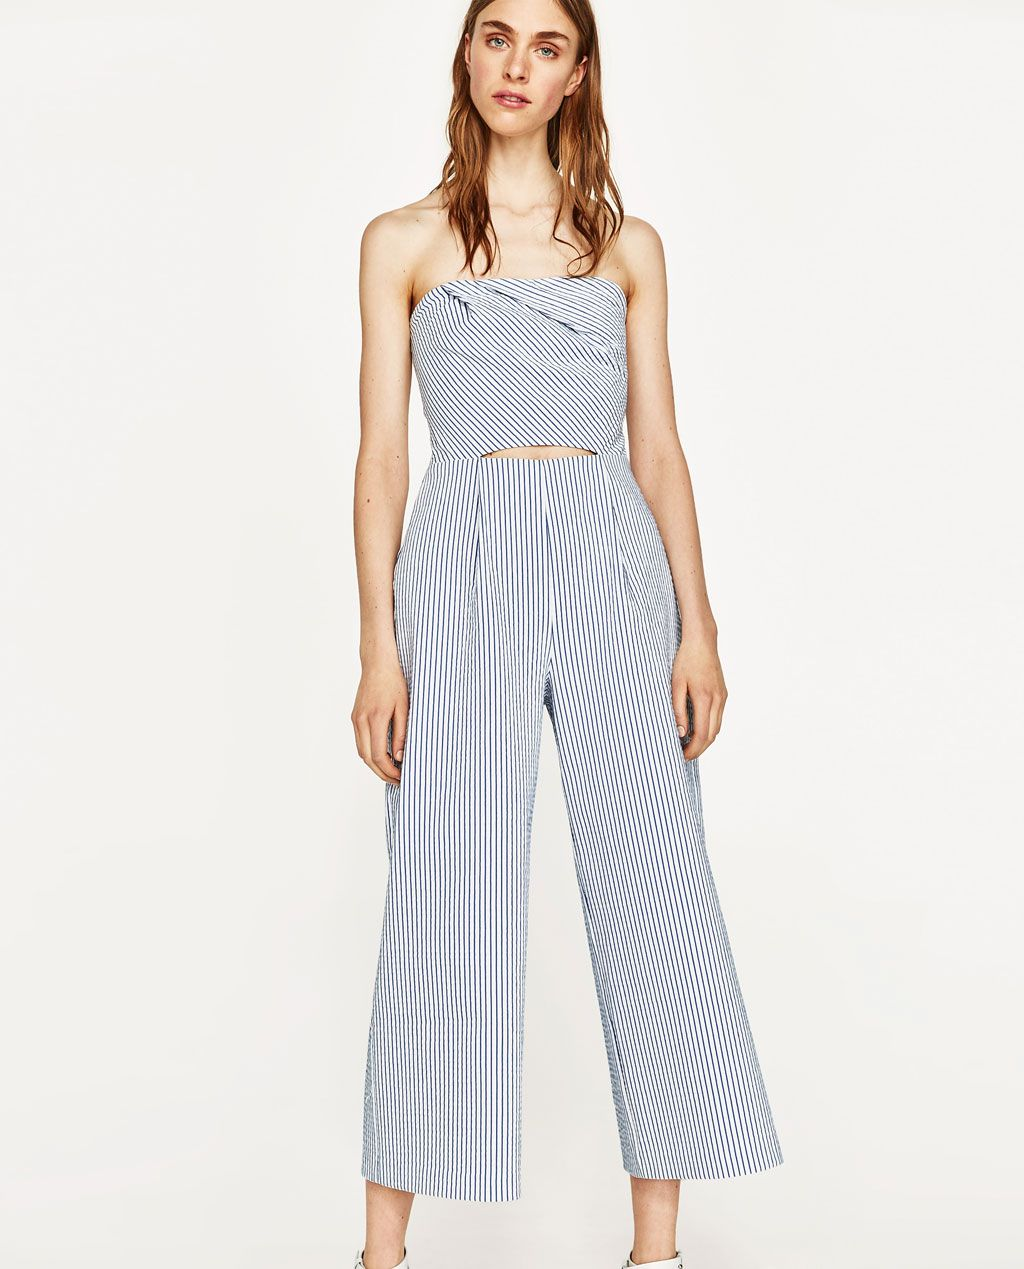 4107c464c56 CUT-OUT BOATNECK JUMPSUIT-NAUTICAL VIBES-WOMAN-EDITORIALS